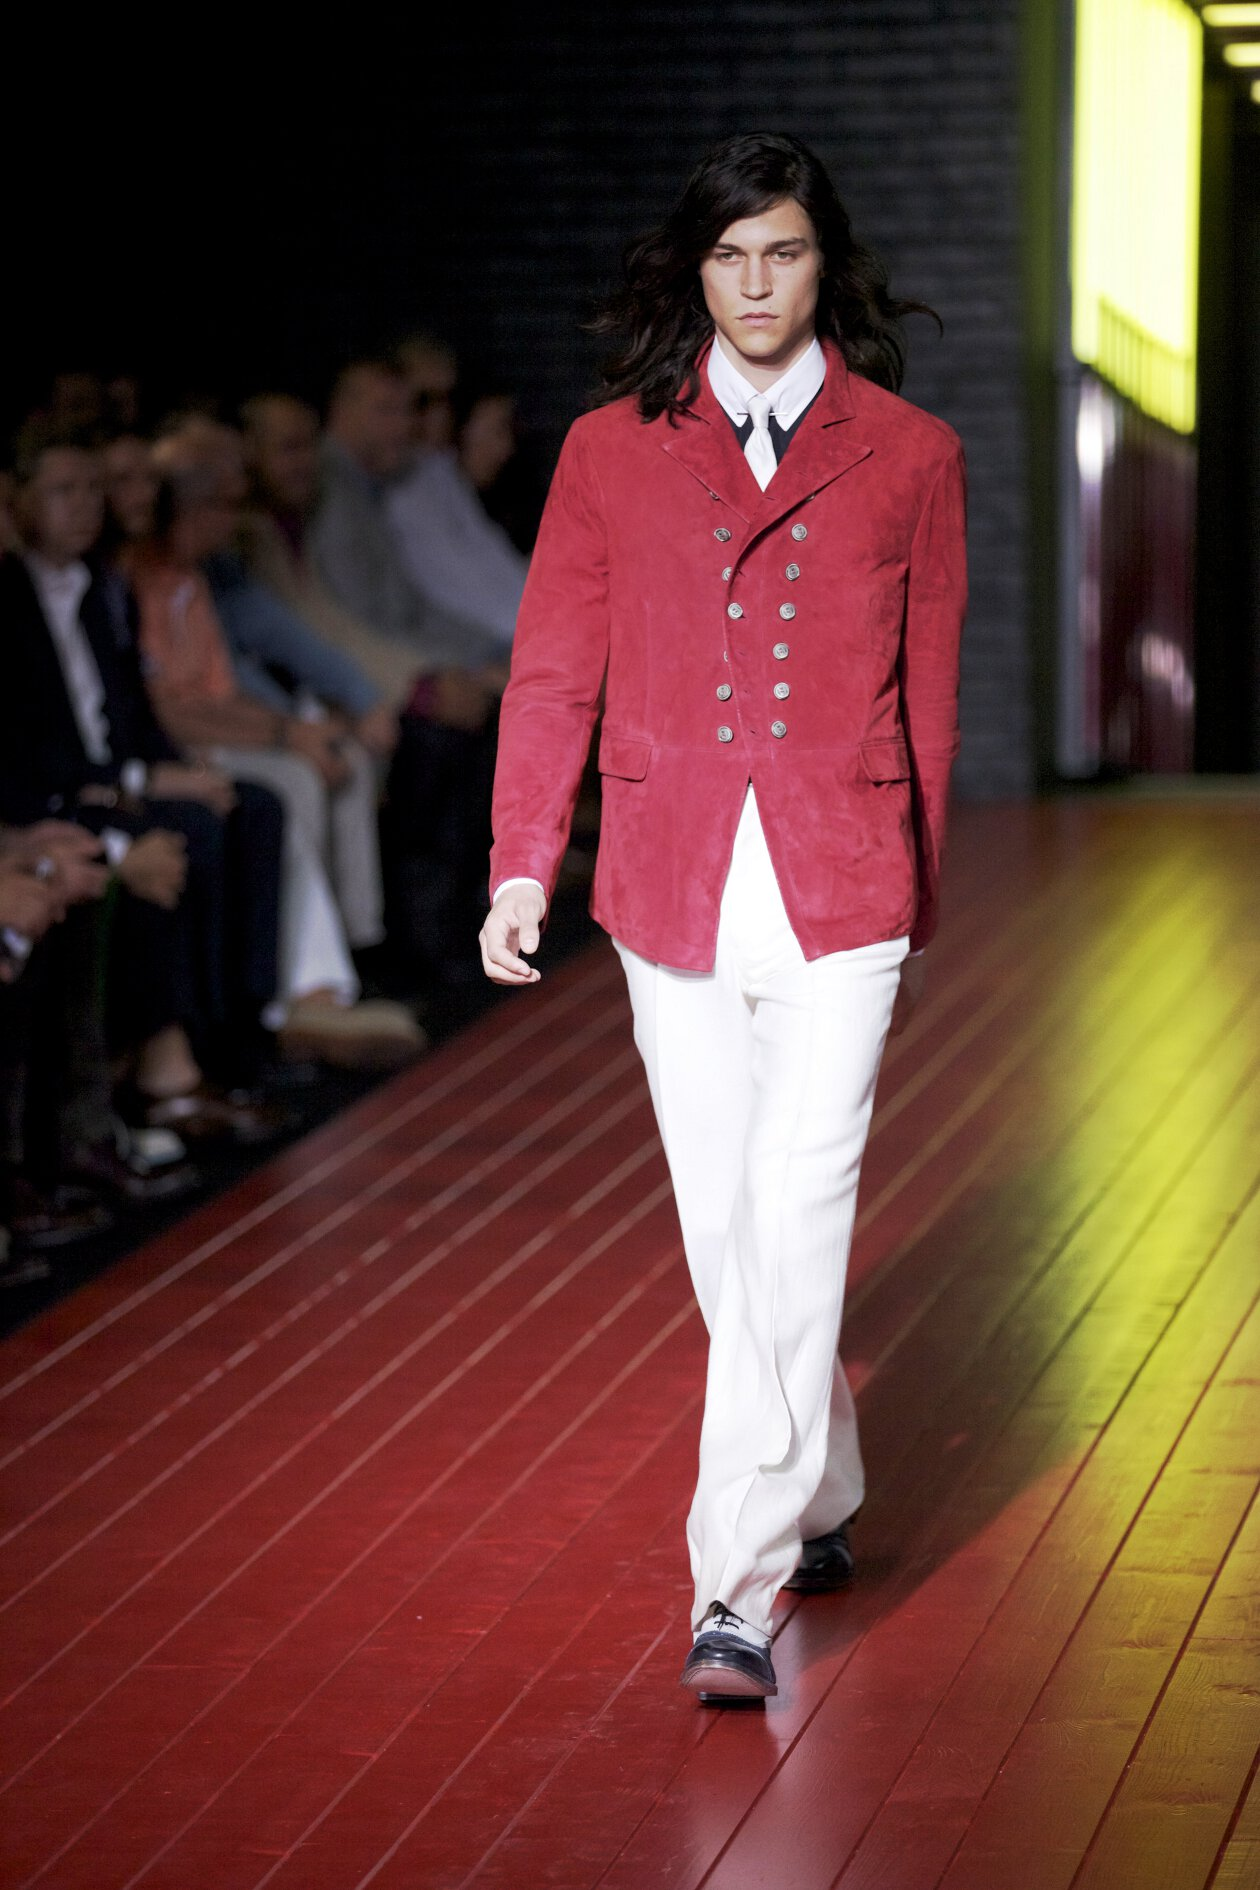 John Varvatos Spring Summer 2013 Menswear Collection Milano Fashion Week